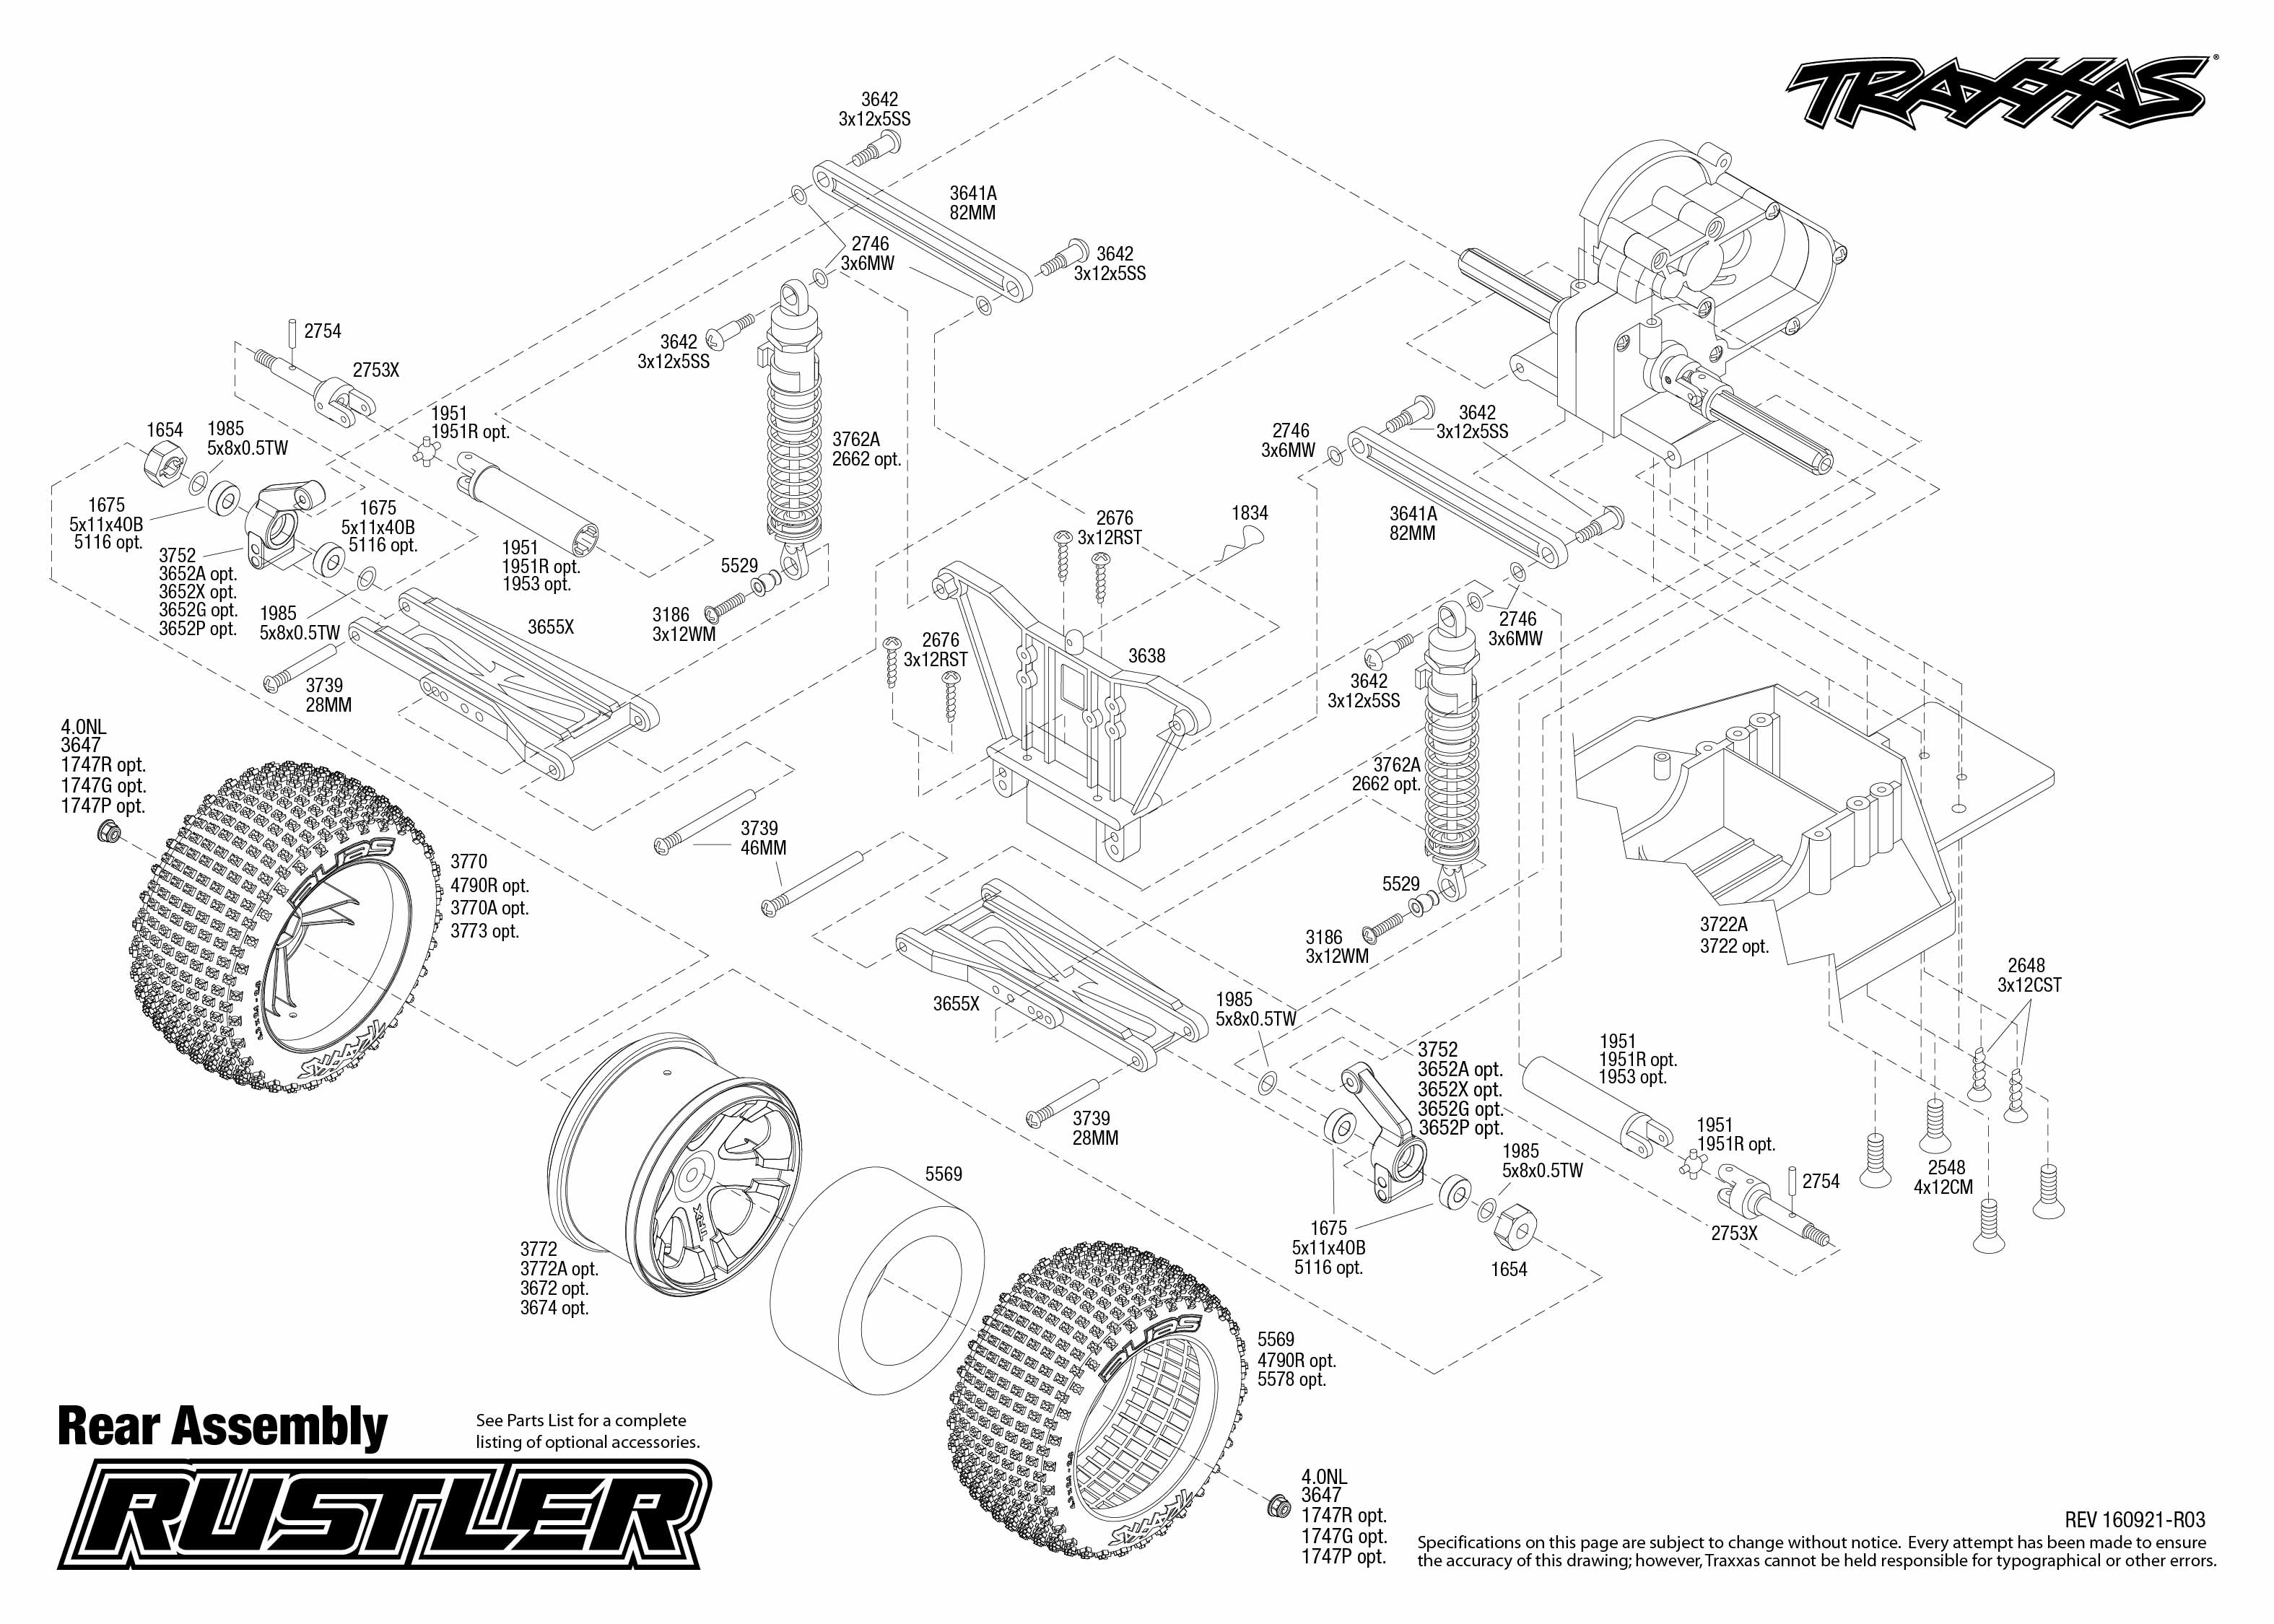 Rustler 1 Rear Assembly Exploded View